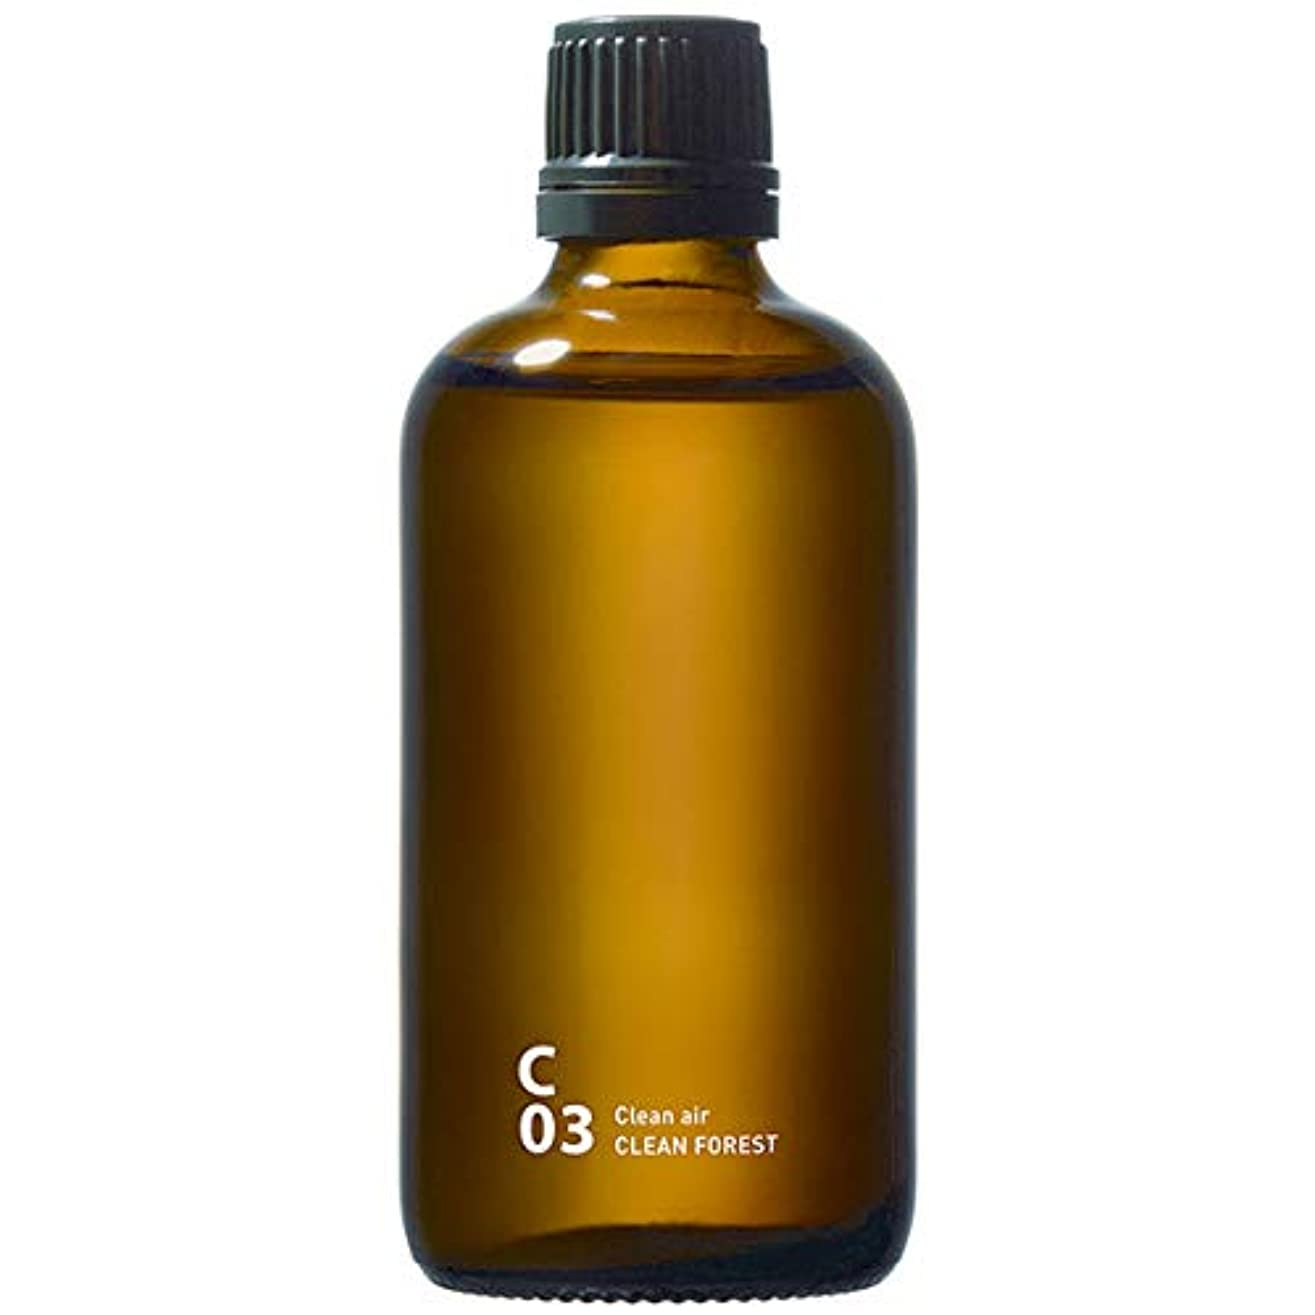 広くブレース瞑想C03 CLEAN FOREST piezo aroma oil 100ml